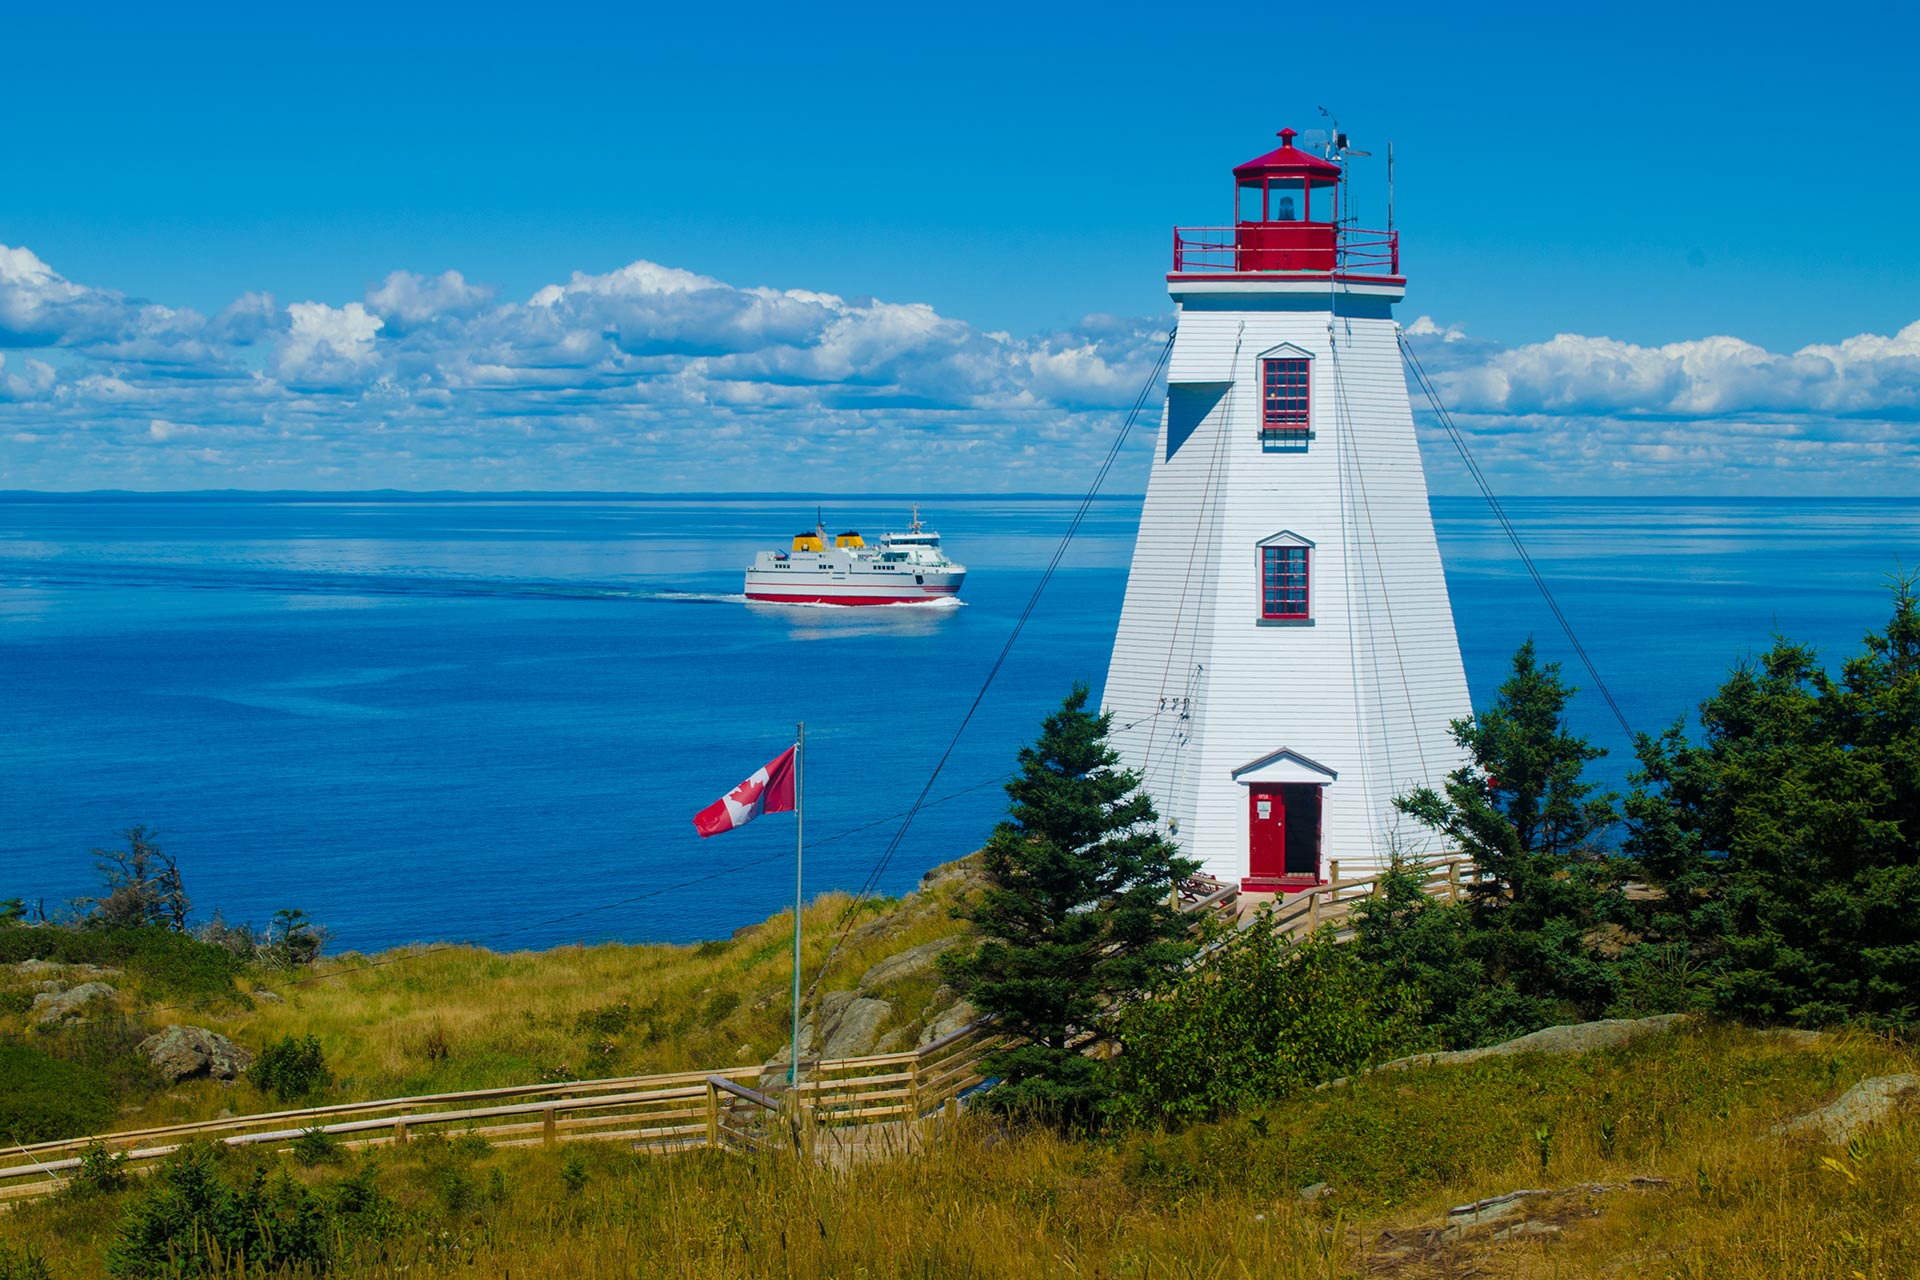 Swallowtail Lighthouse on Grand Manan Island, NB, Canada; Courtesy of VH Creations/Shutterstock